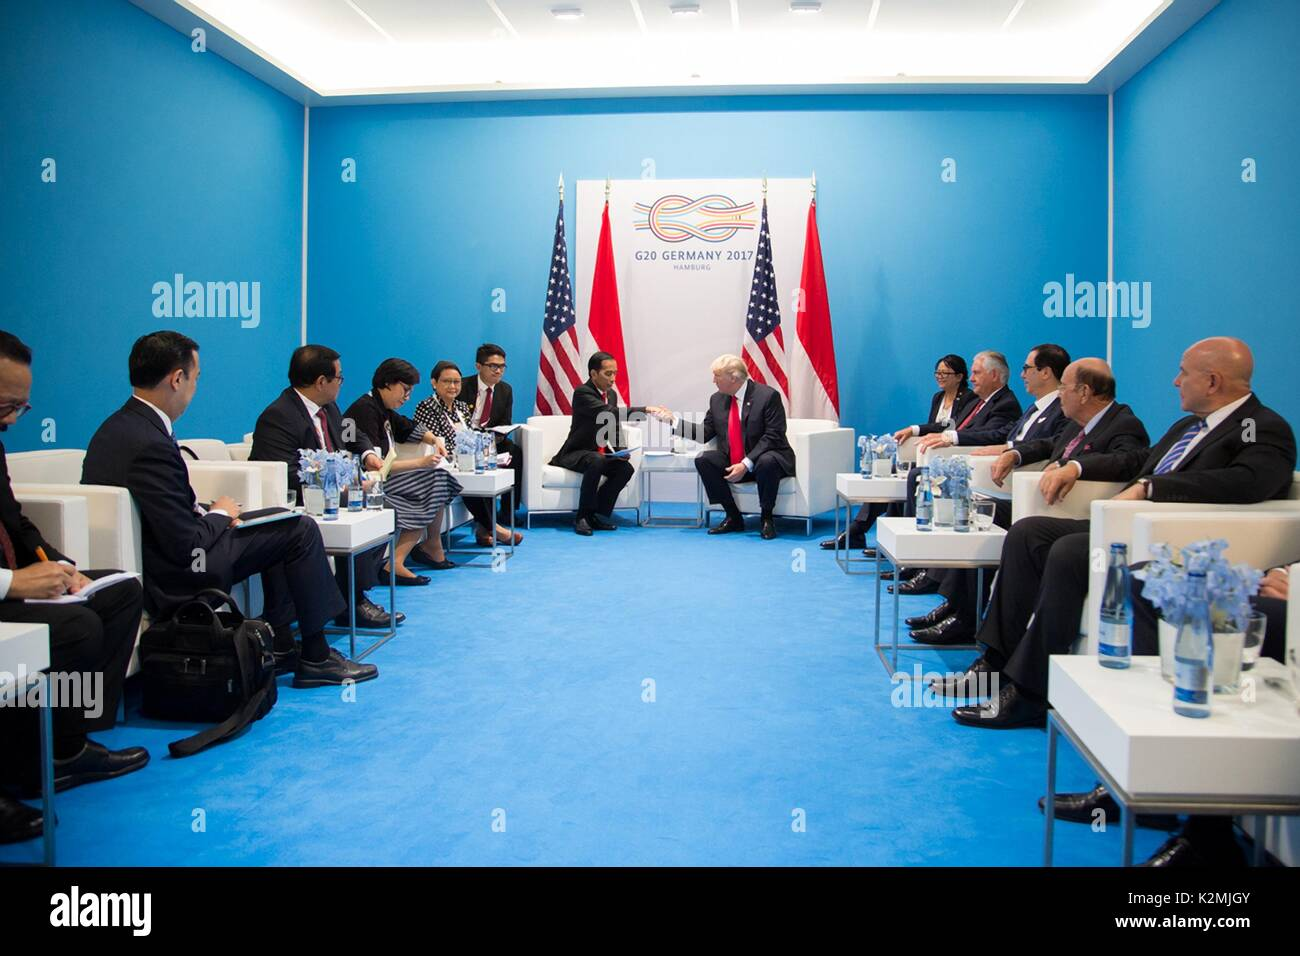 U.S. President Donald Trump and Indonesian President Joko Widodo before the start of their bilateral meeting on the sidelines of the G20 Summit July 8, 2017 in Hamburg, Germany. - Stock Image